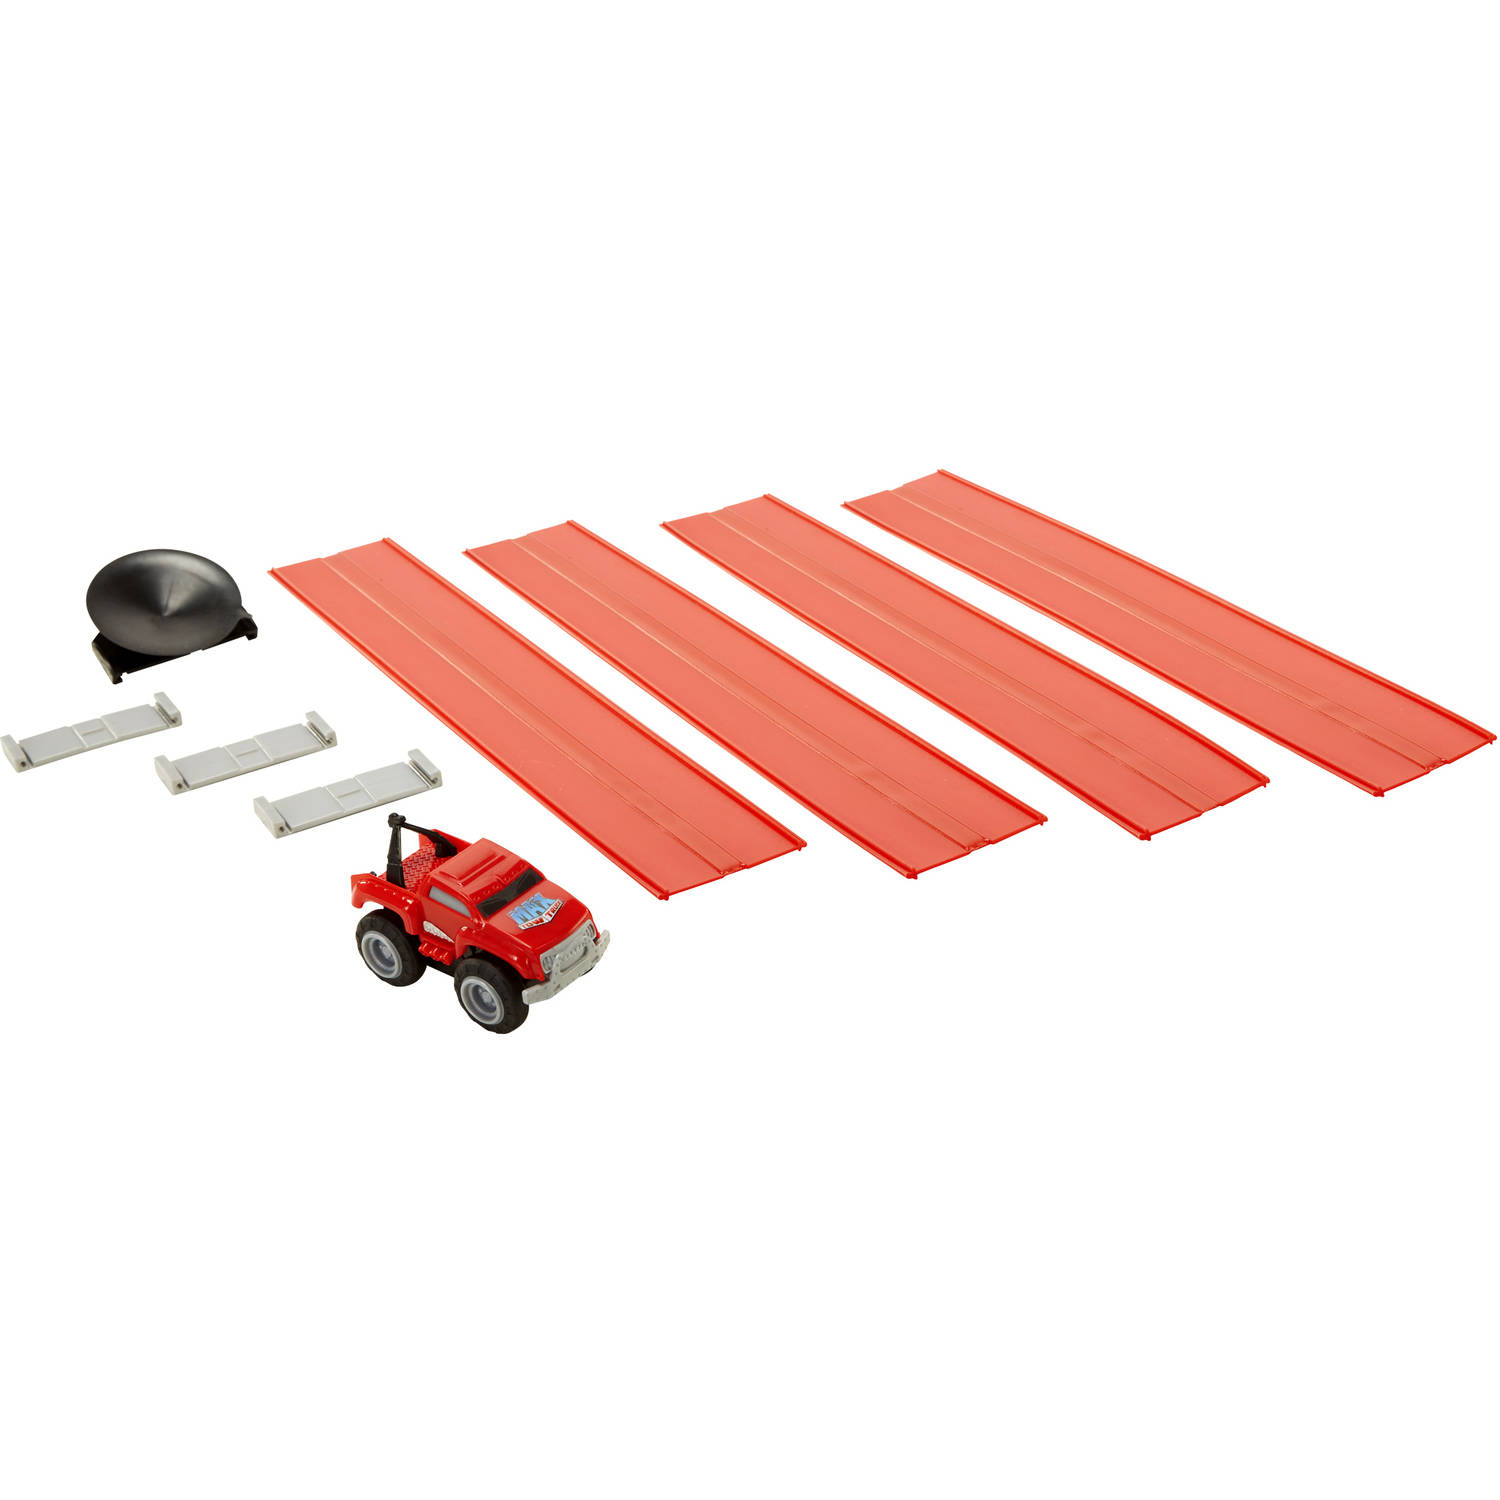 Max Tow Mini Haulers Tow and Track Packs, Red Tow Truck with Track Pieces